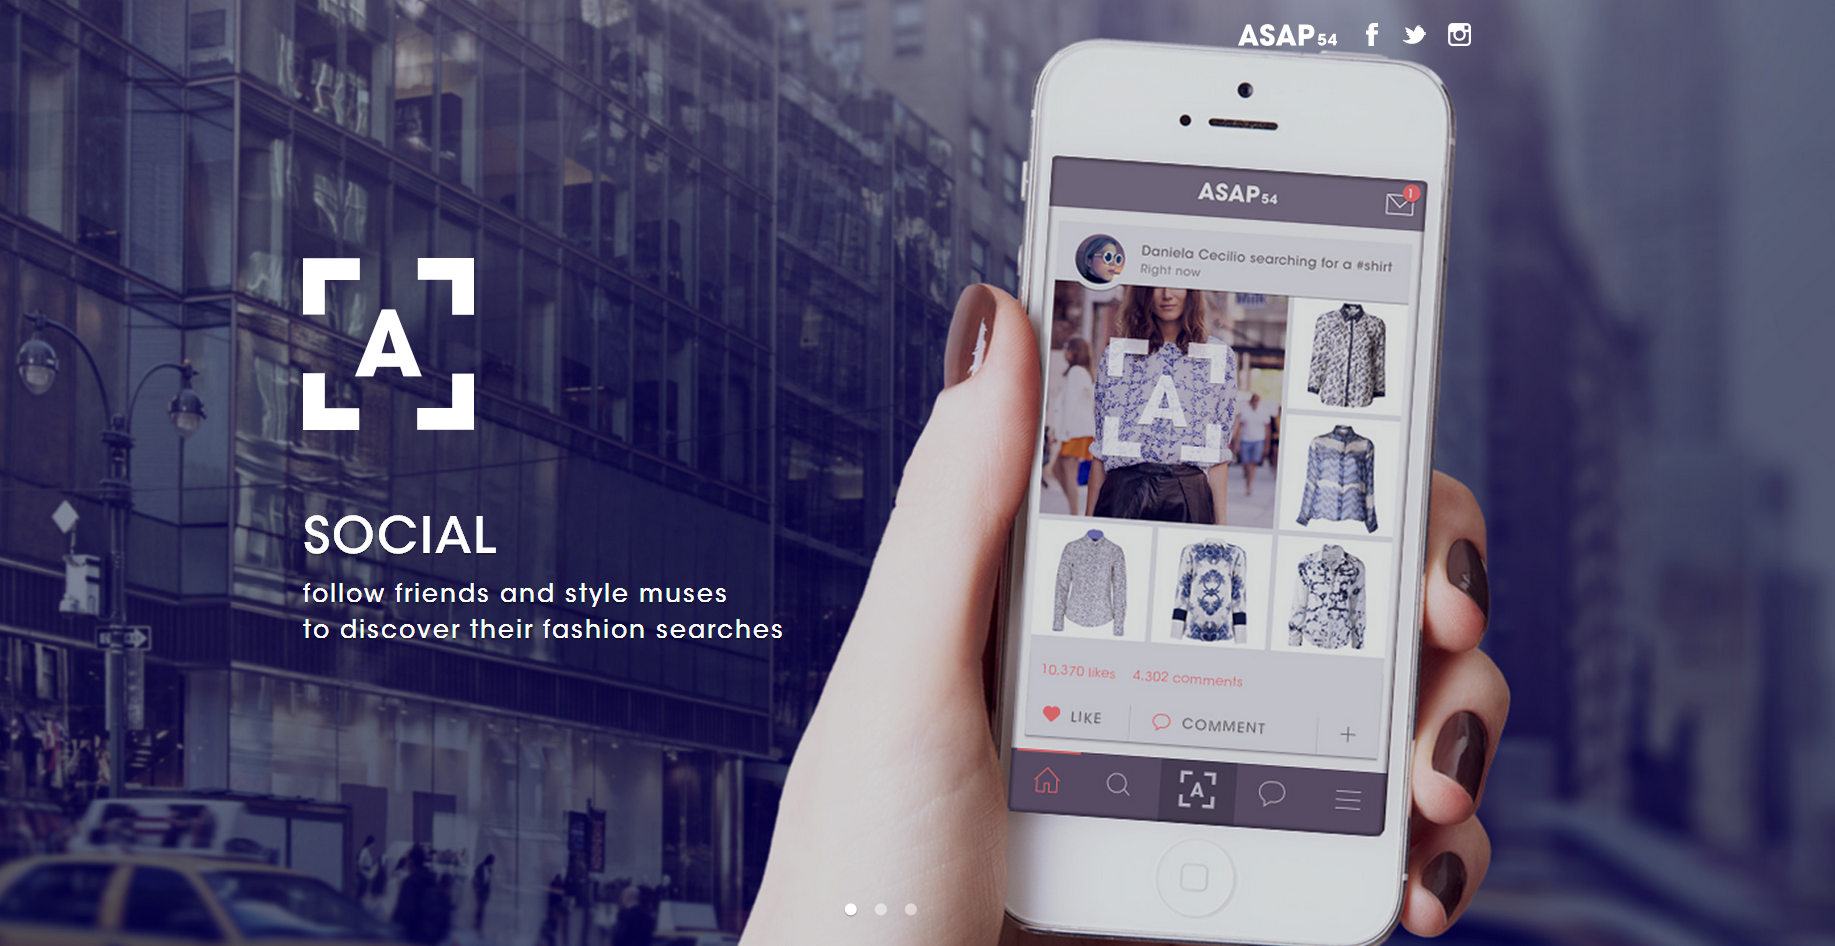 ASAP54: A New Way to Discover & Shop Online